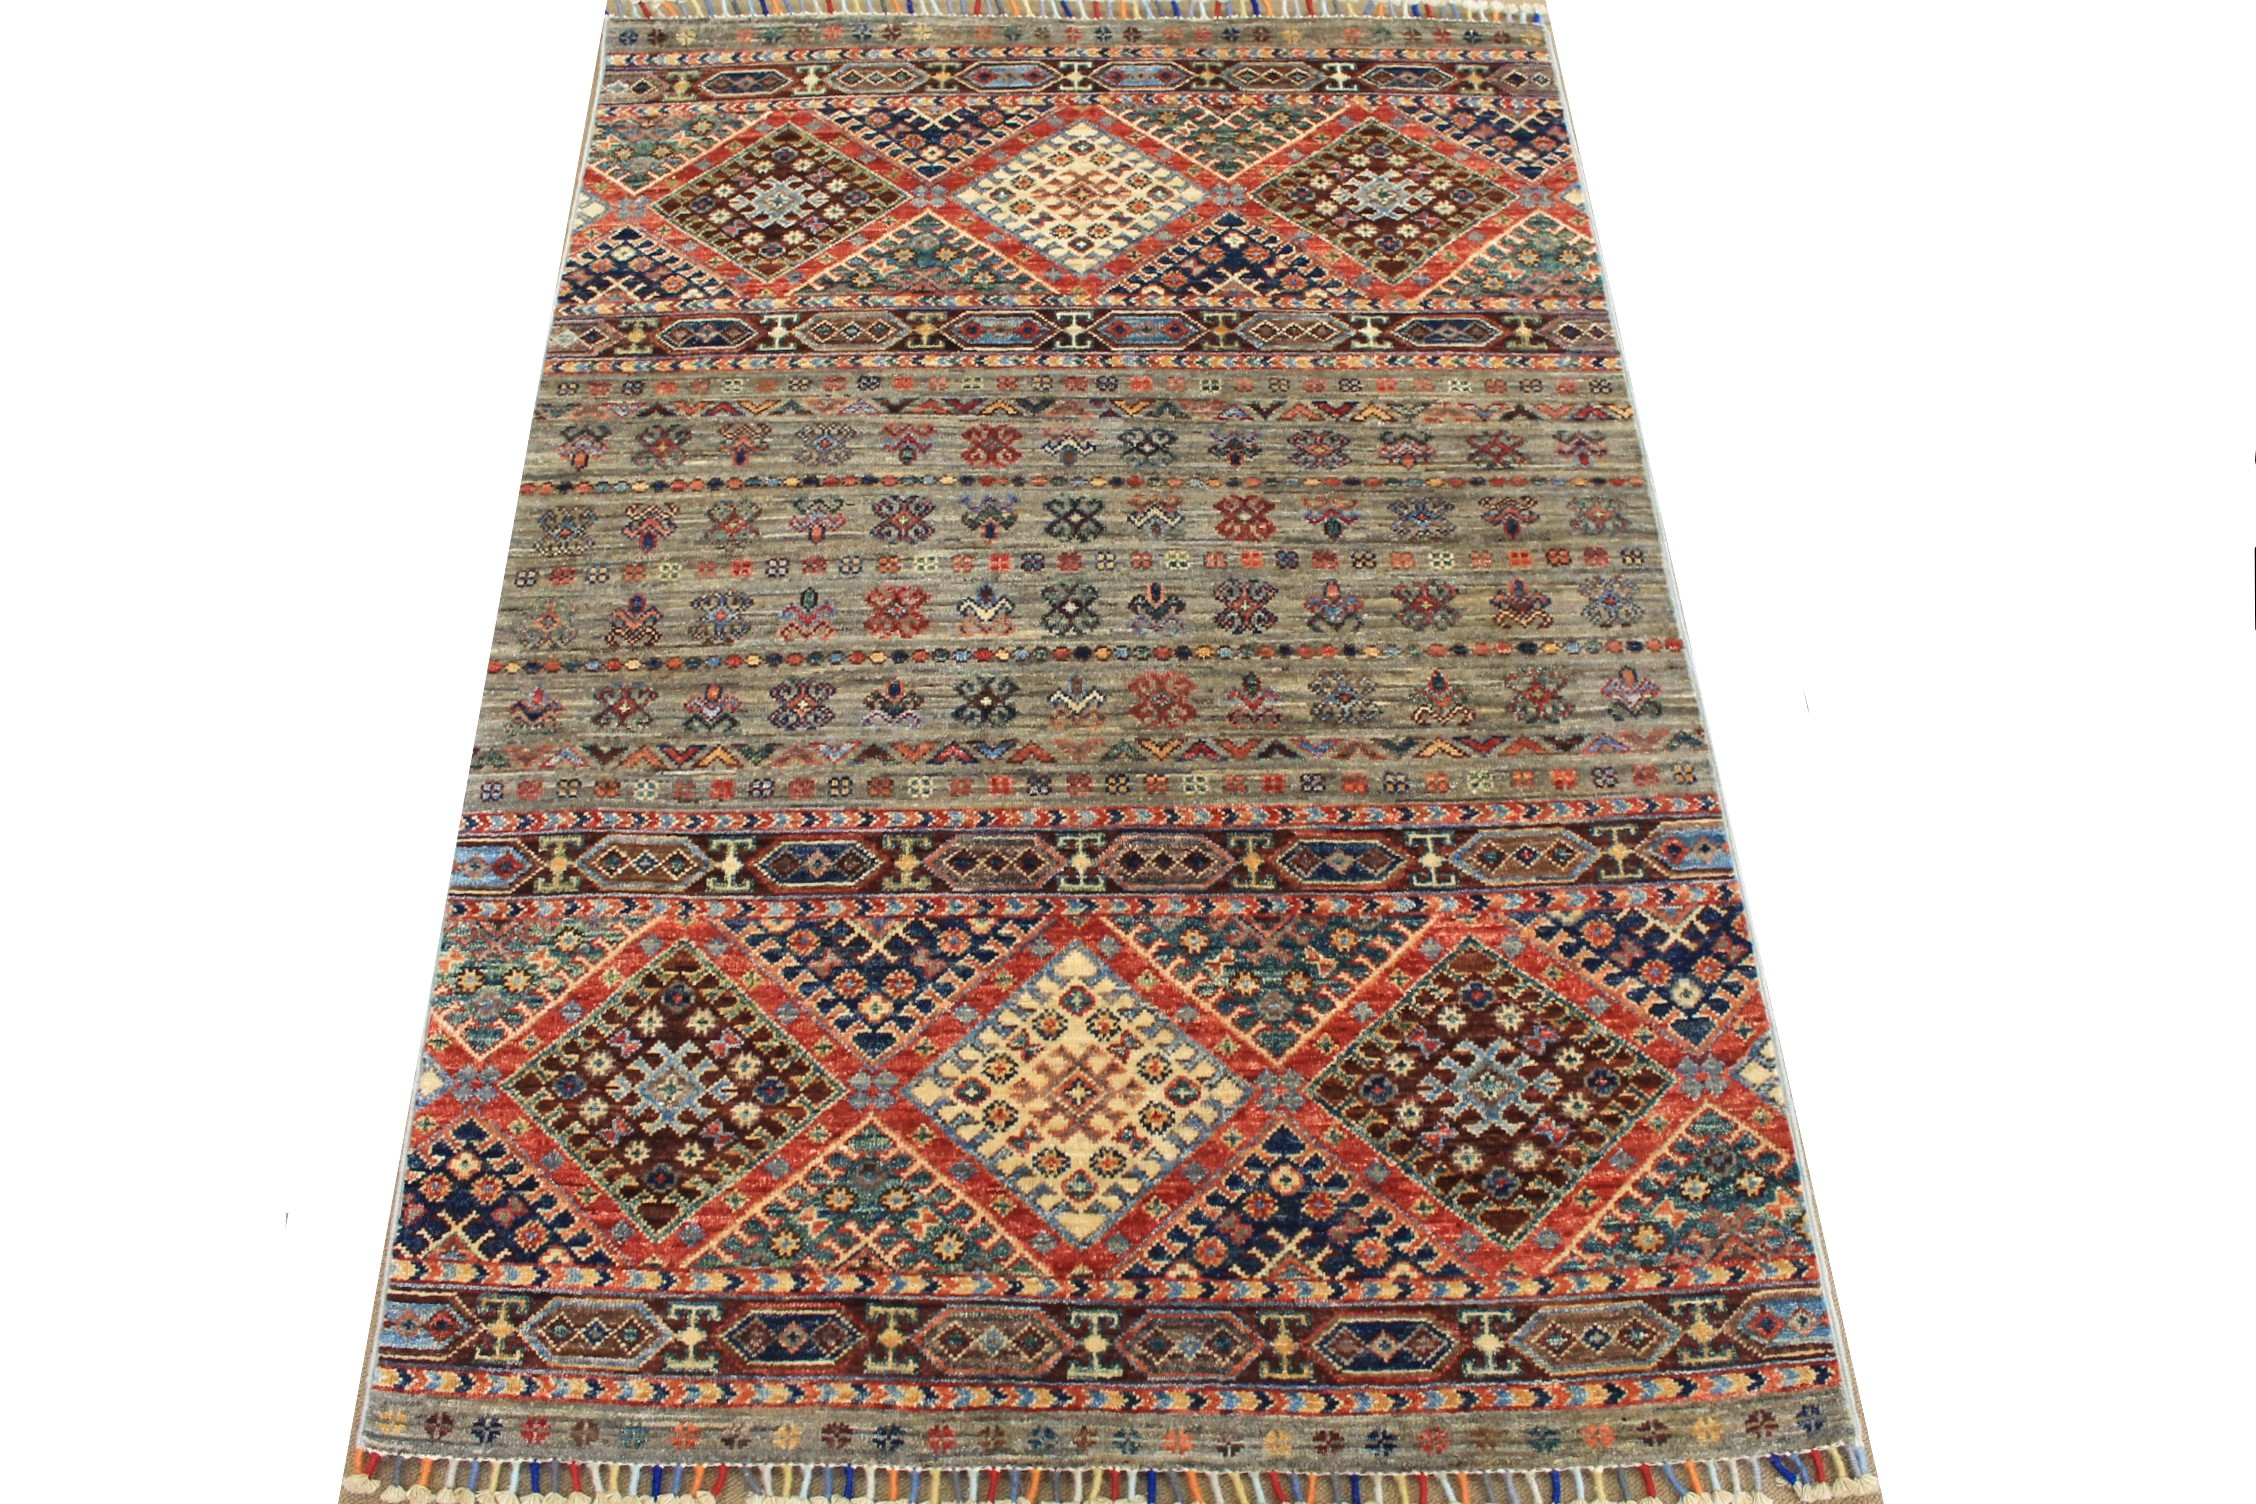 3x5 Tribal Hand Knotted Wool Area Rug - MR025299